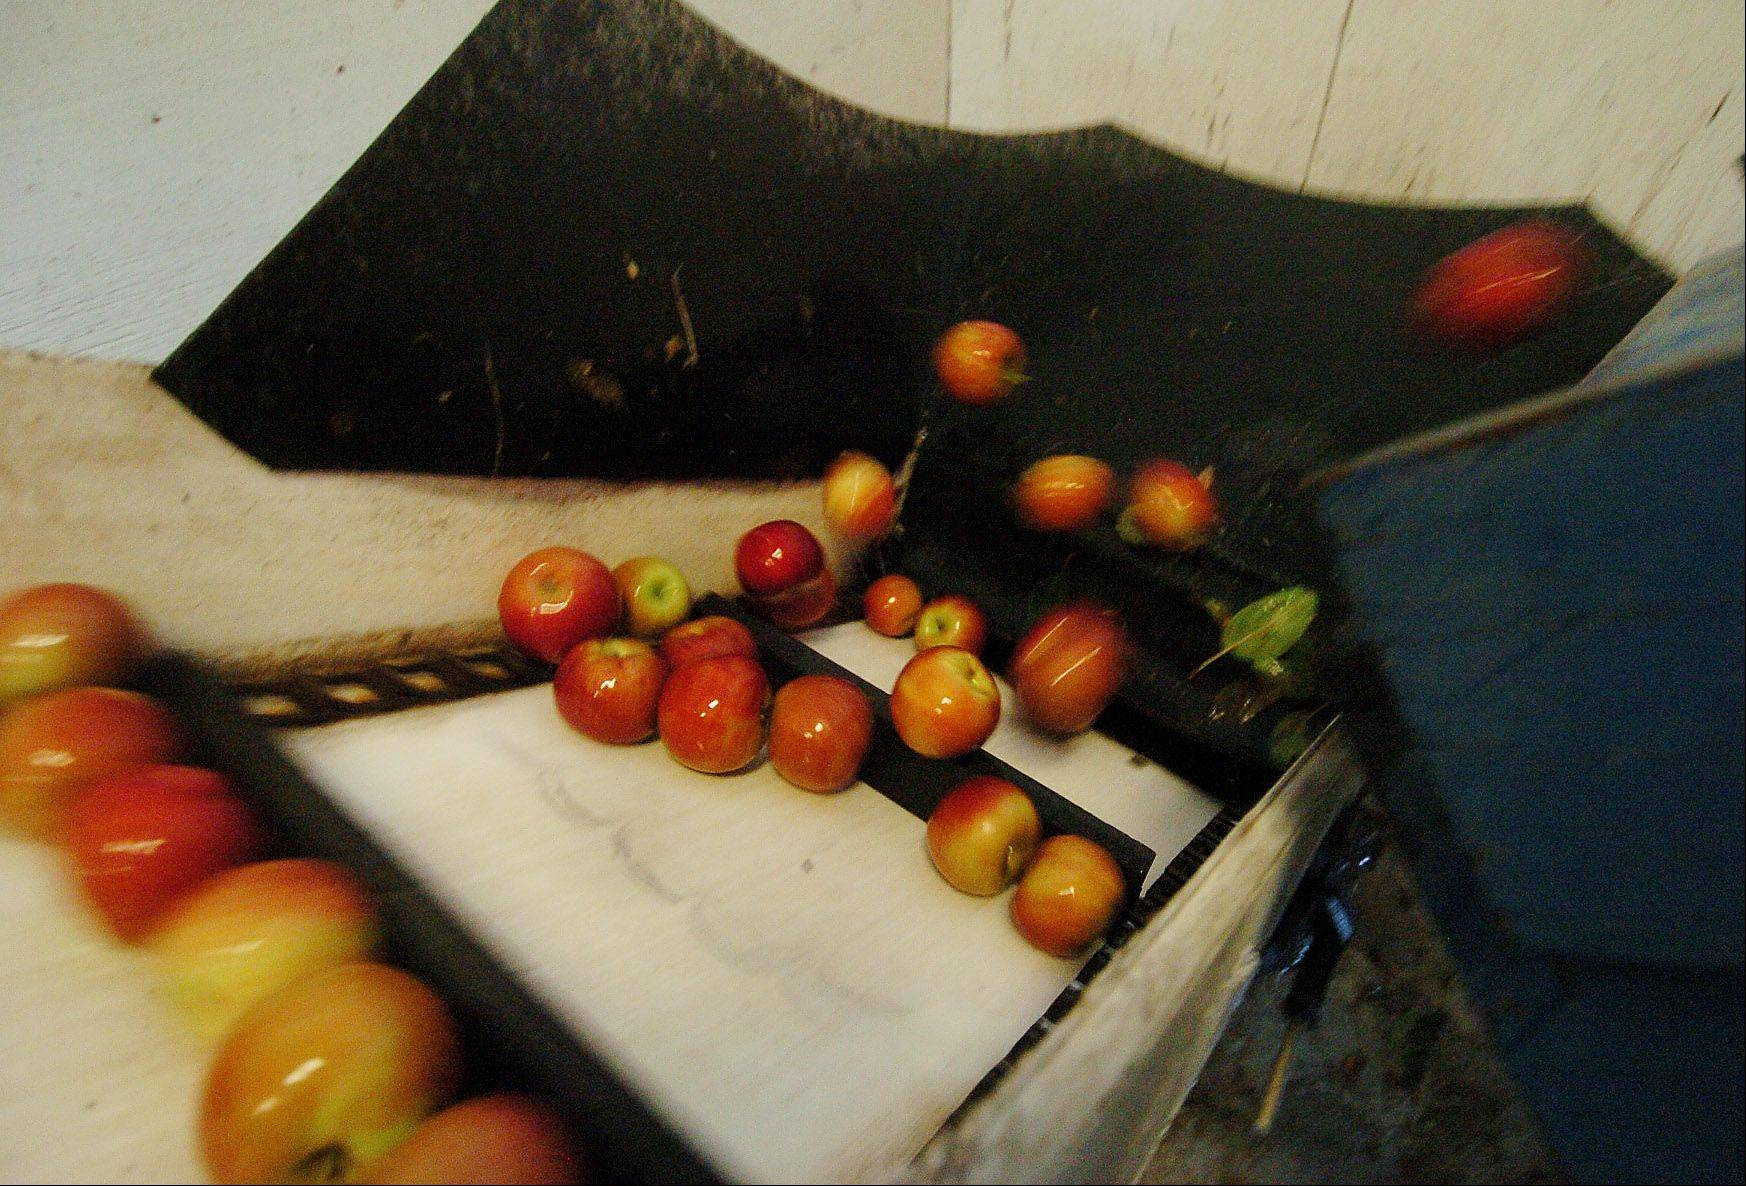 Apples come flying out of the washer and up a conveyor belt to the grinder where the juice is extracted from the apples.